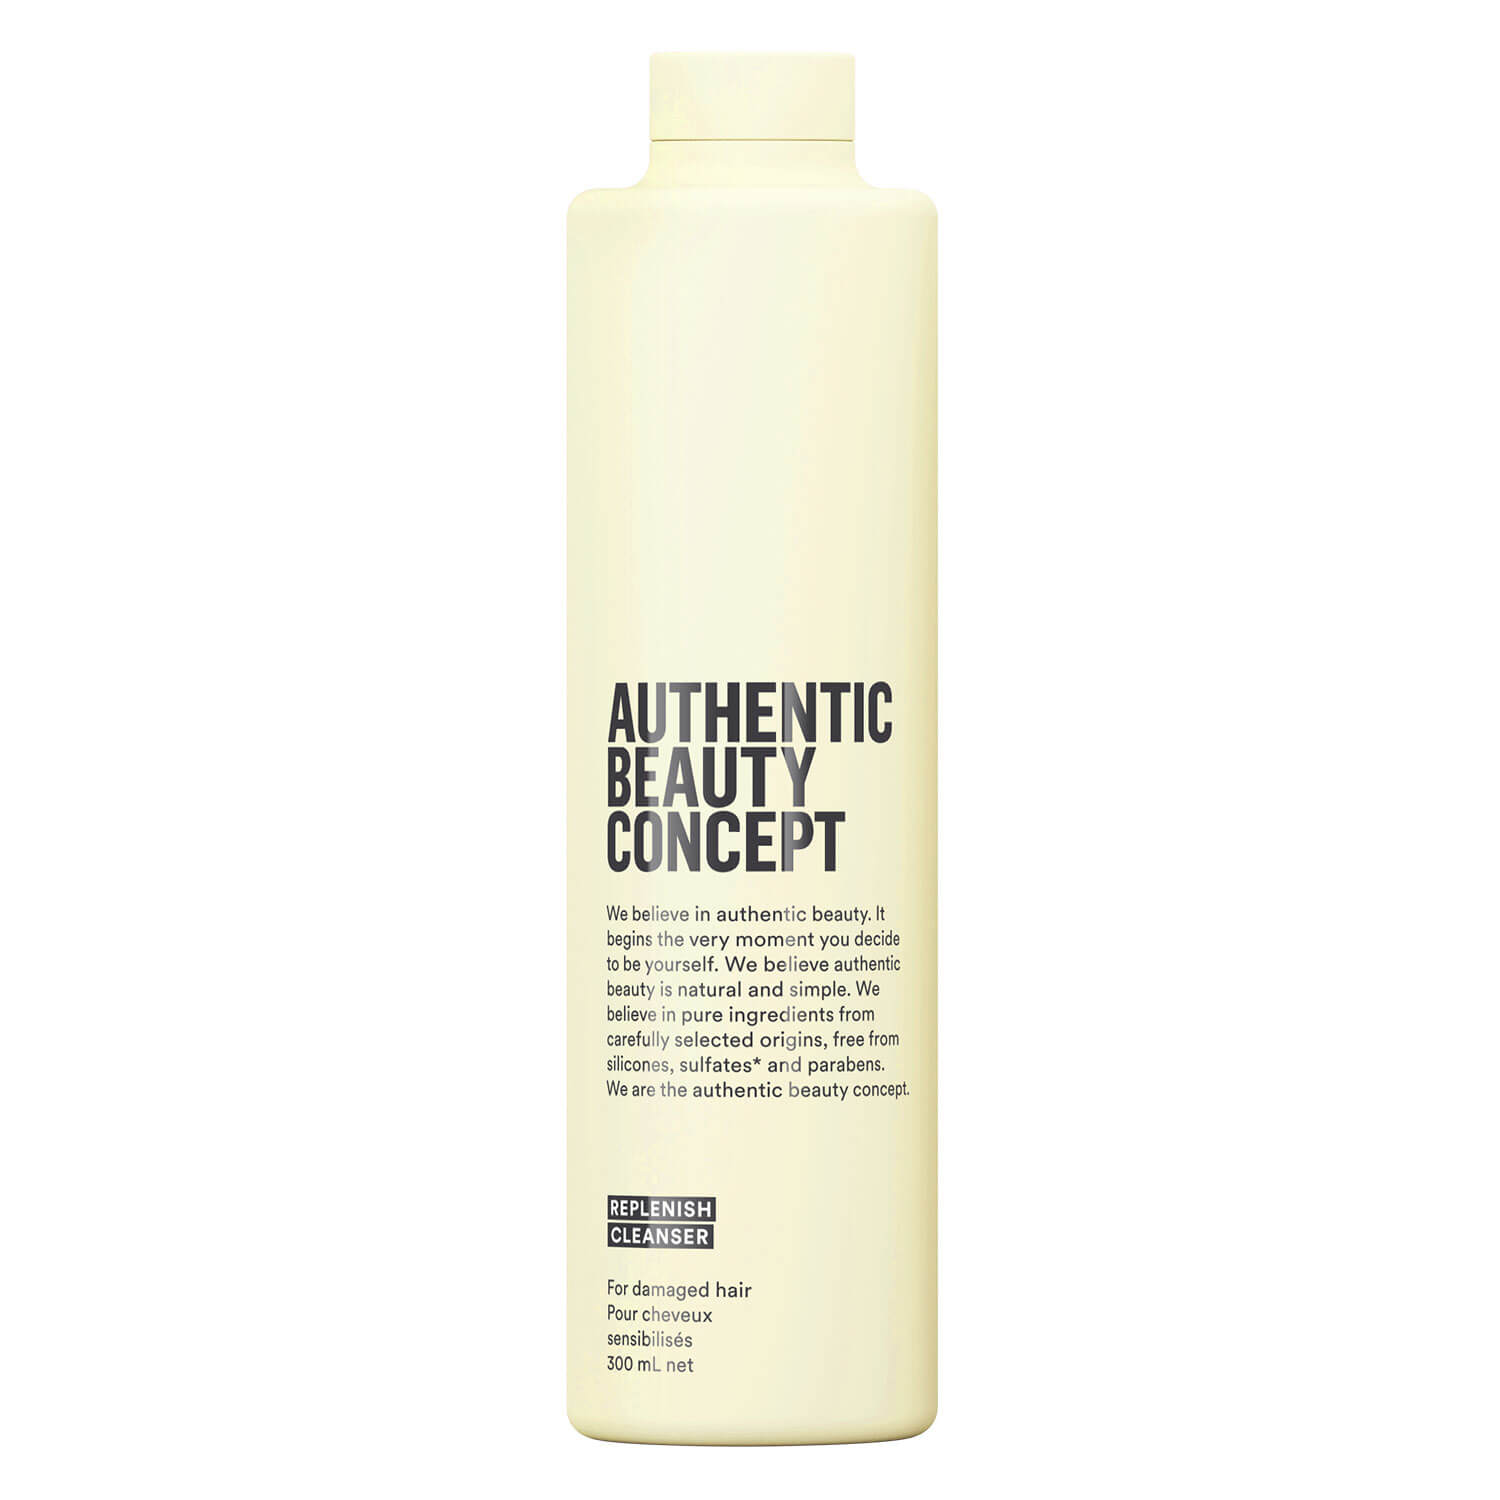 Authentic Beauty Concept - Replenish Cleanser - 300ml